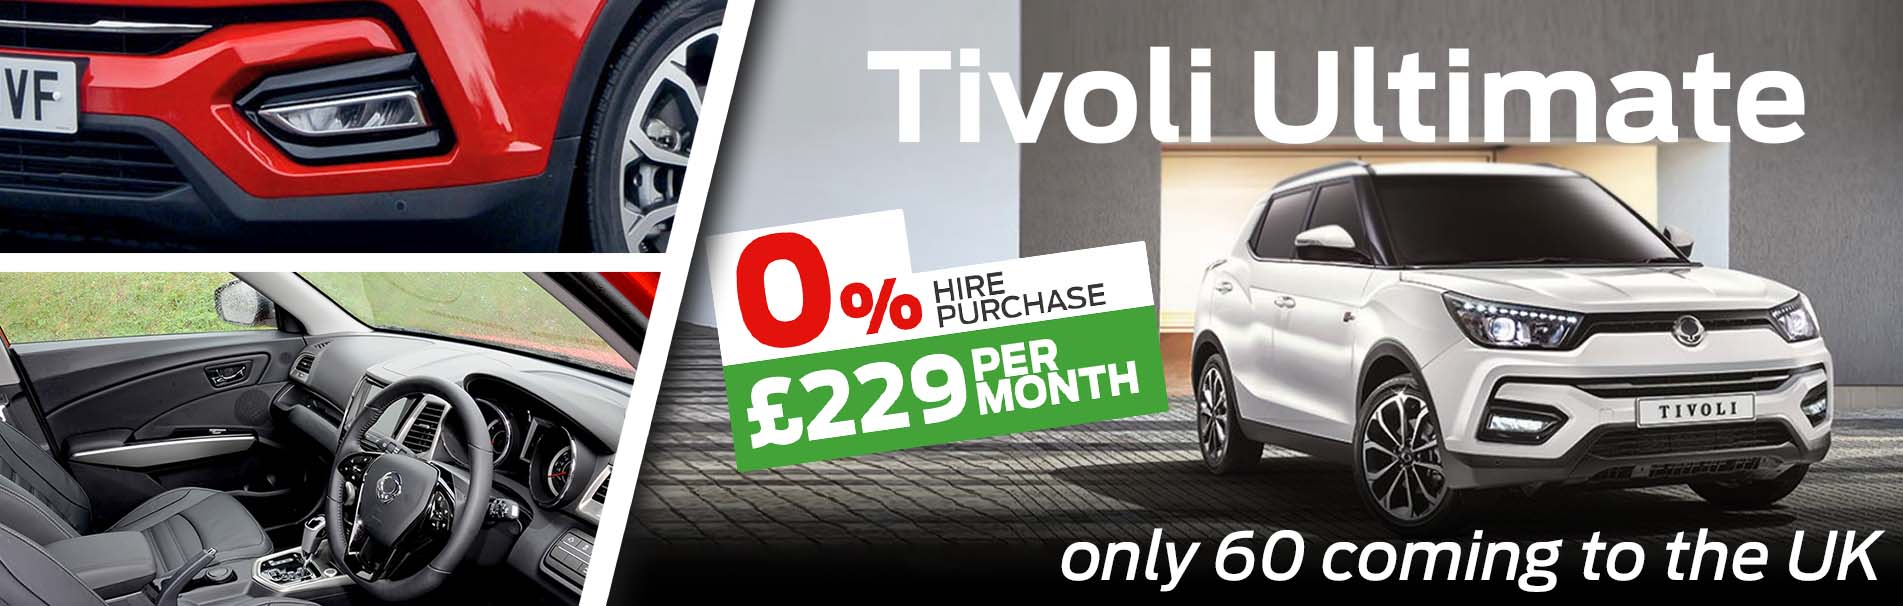 ssangyong-tivoli-ultimate-from-229-per-month-zero-percent-apr-sli